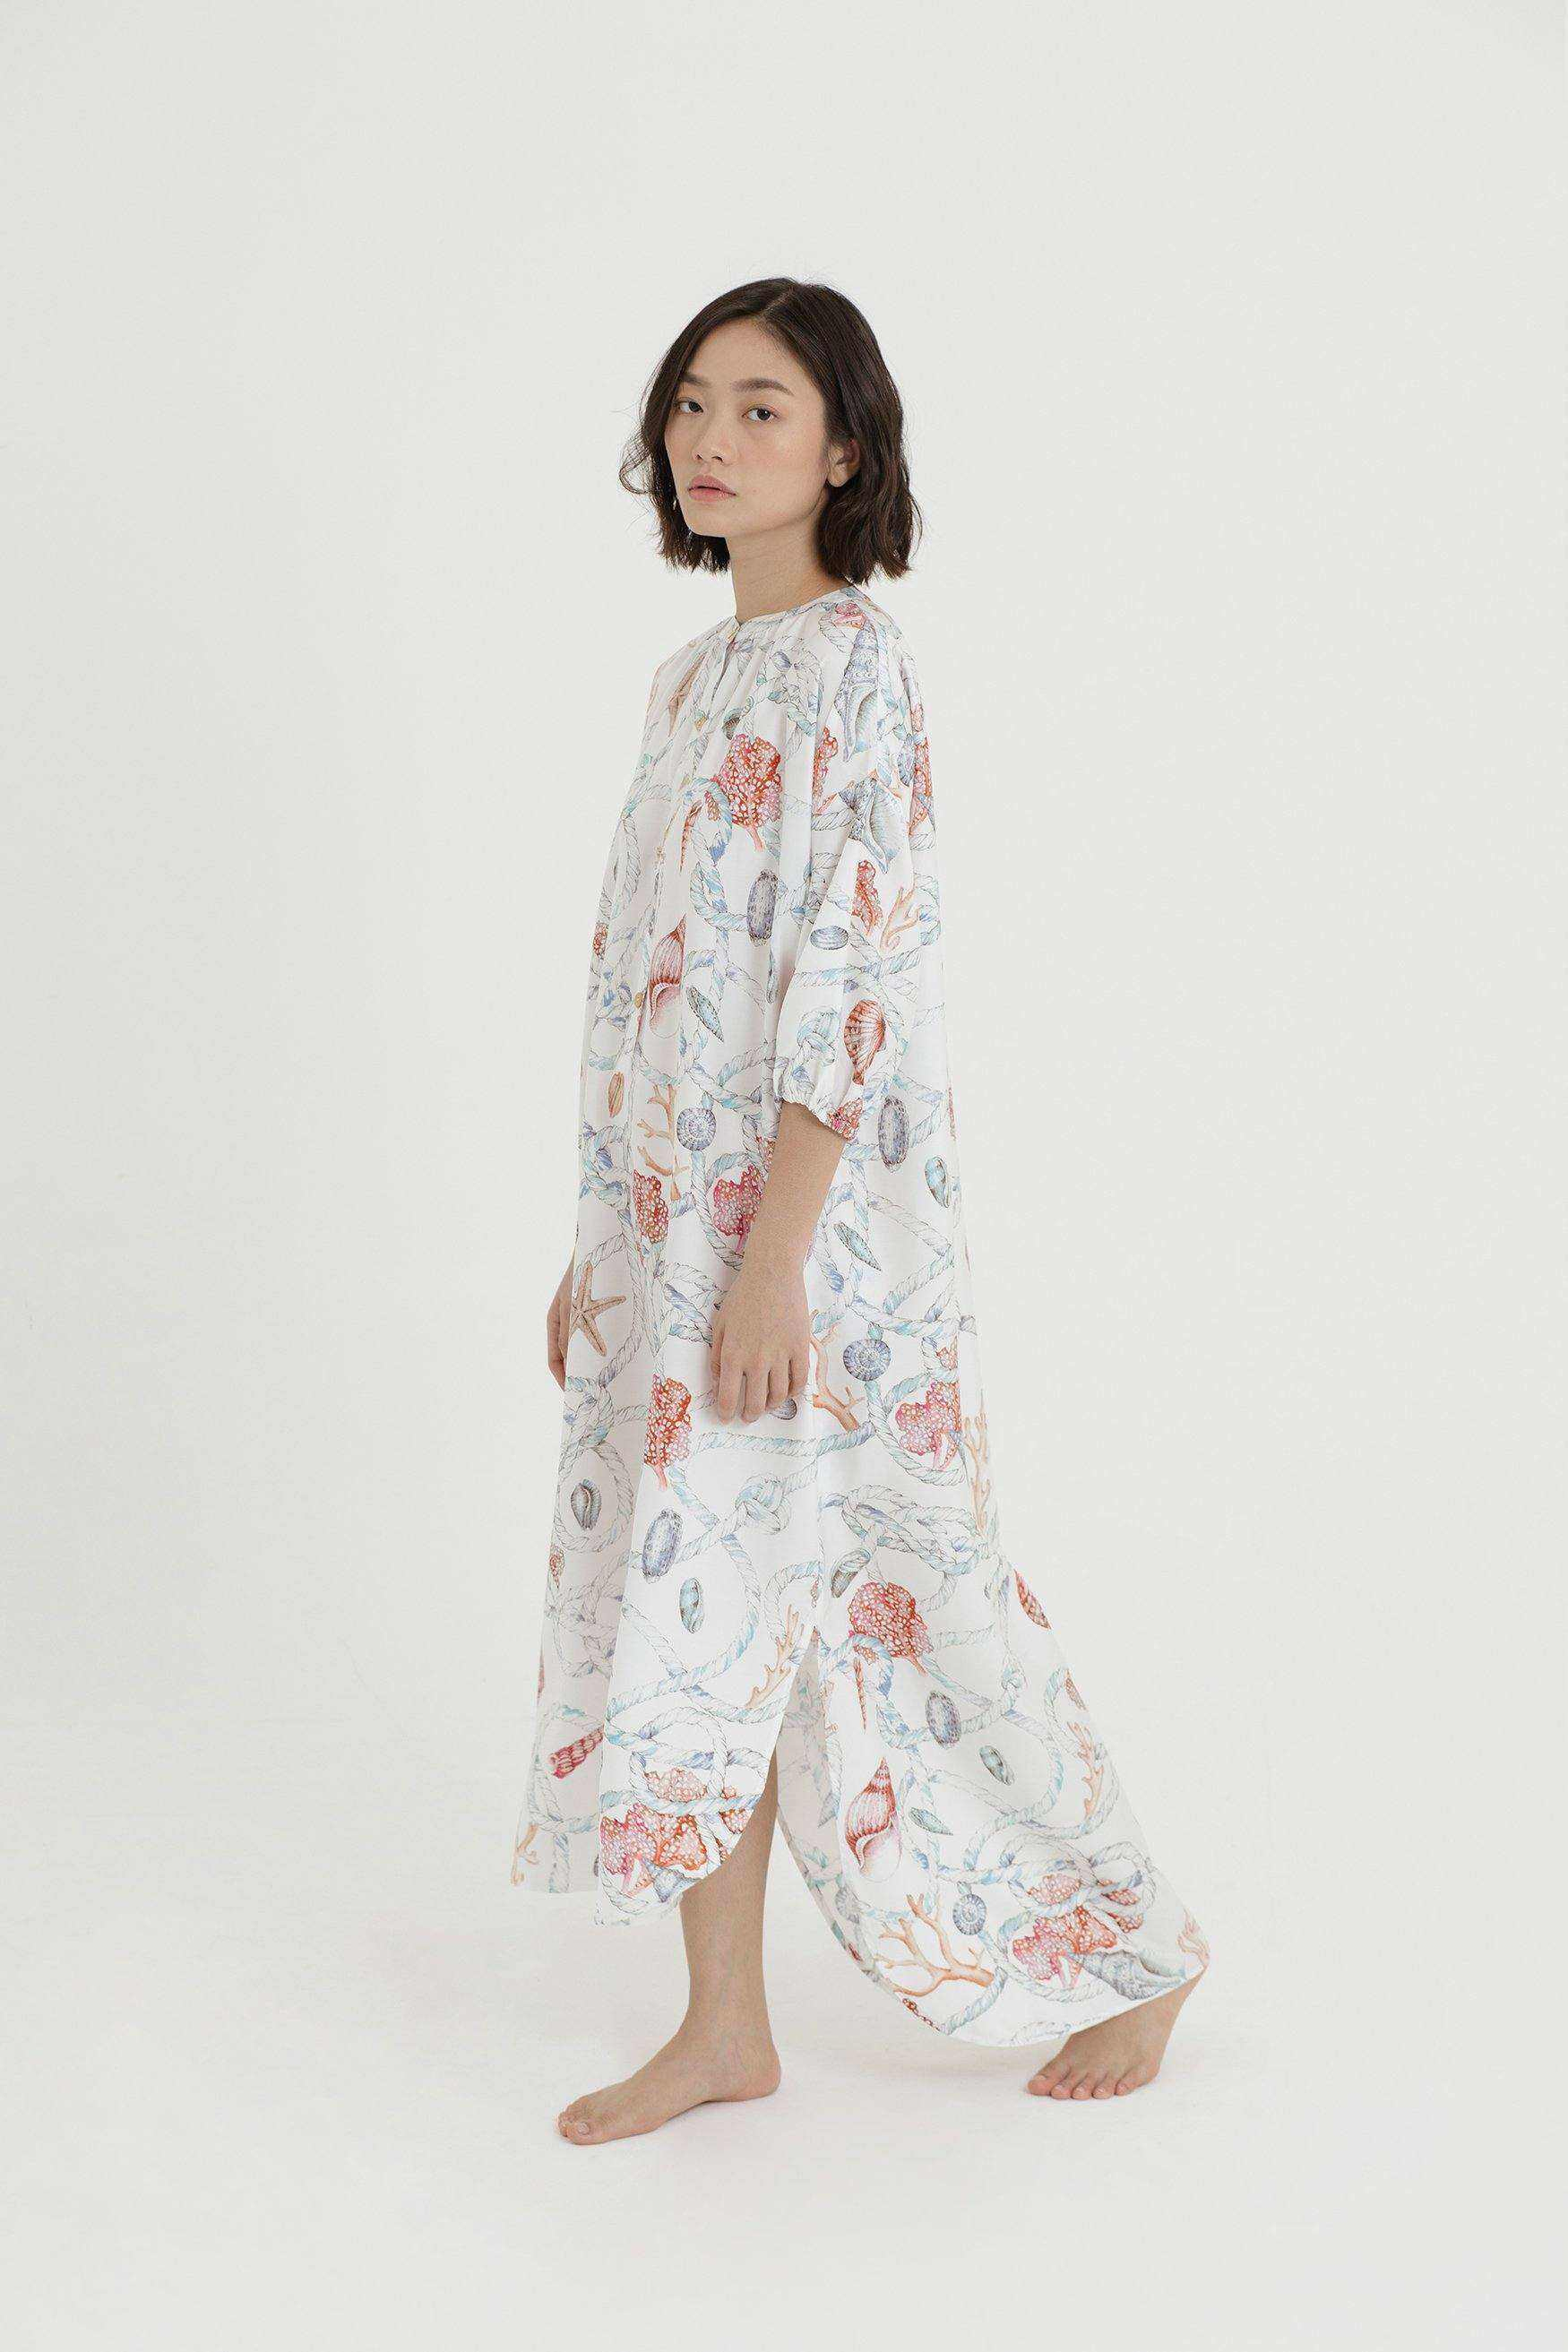 Madison Printed Dress - EESOME